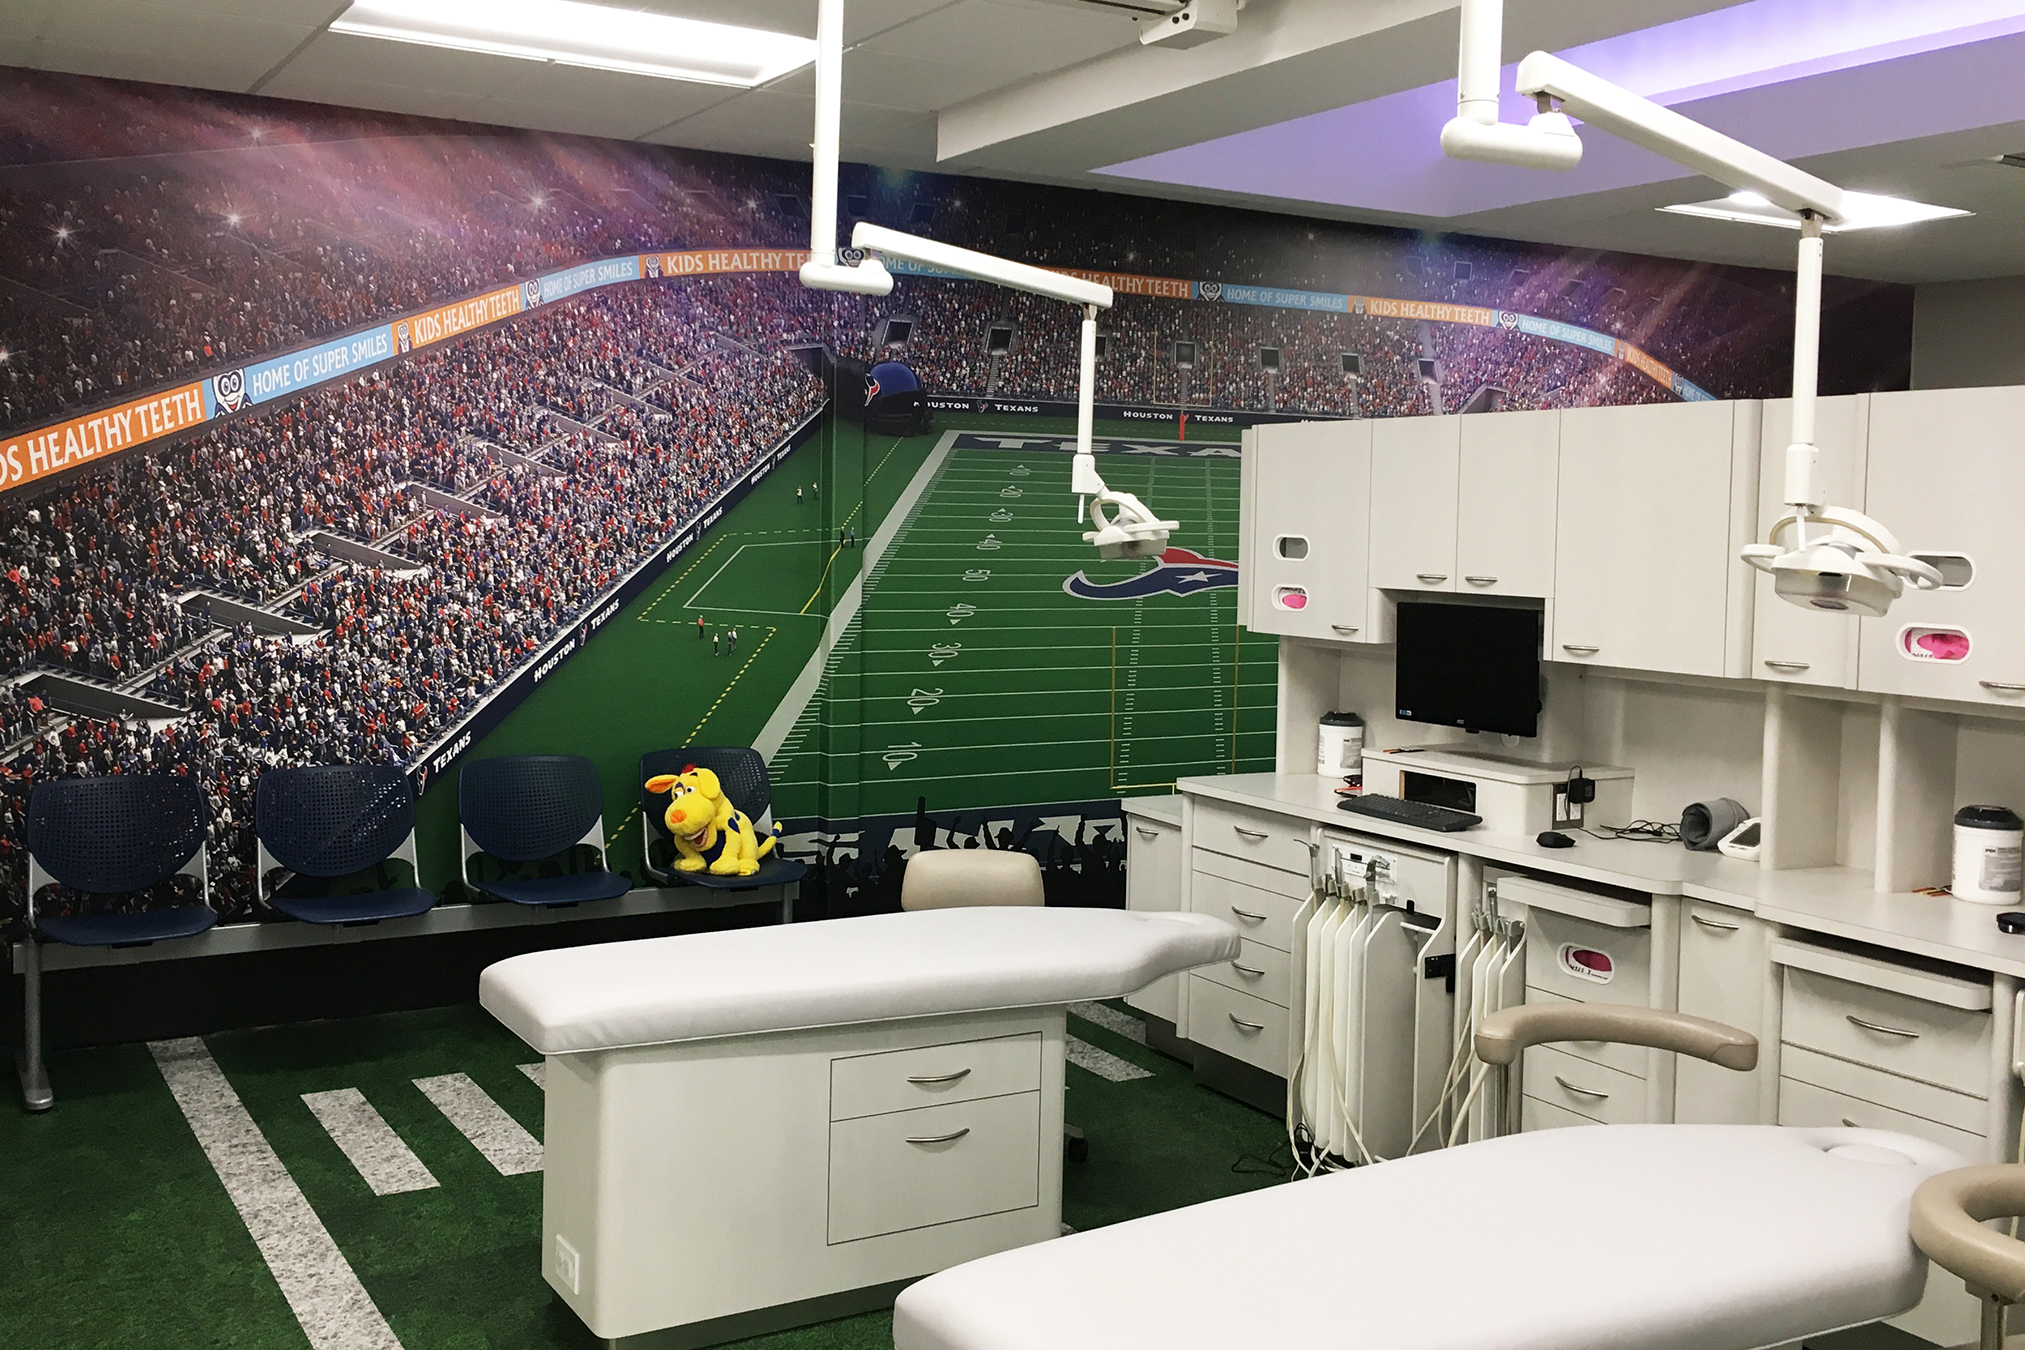 Box Seats Within a Pediatric Dental Hygienist Room